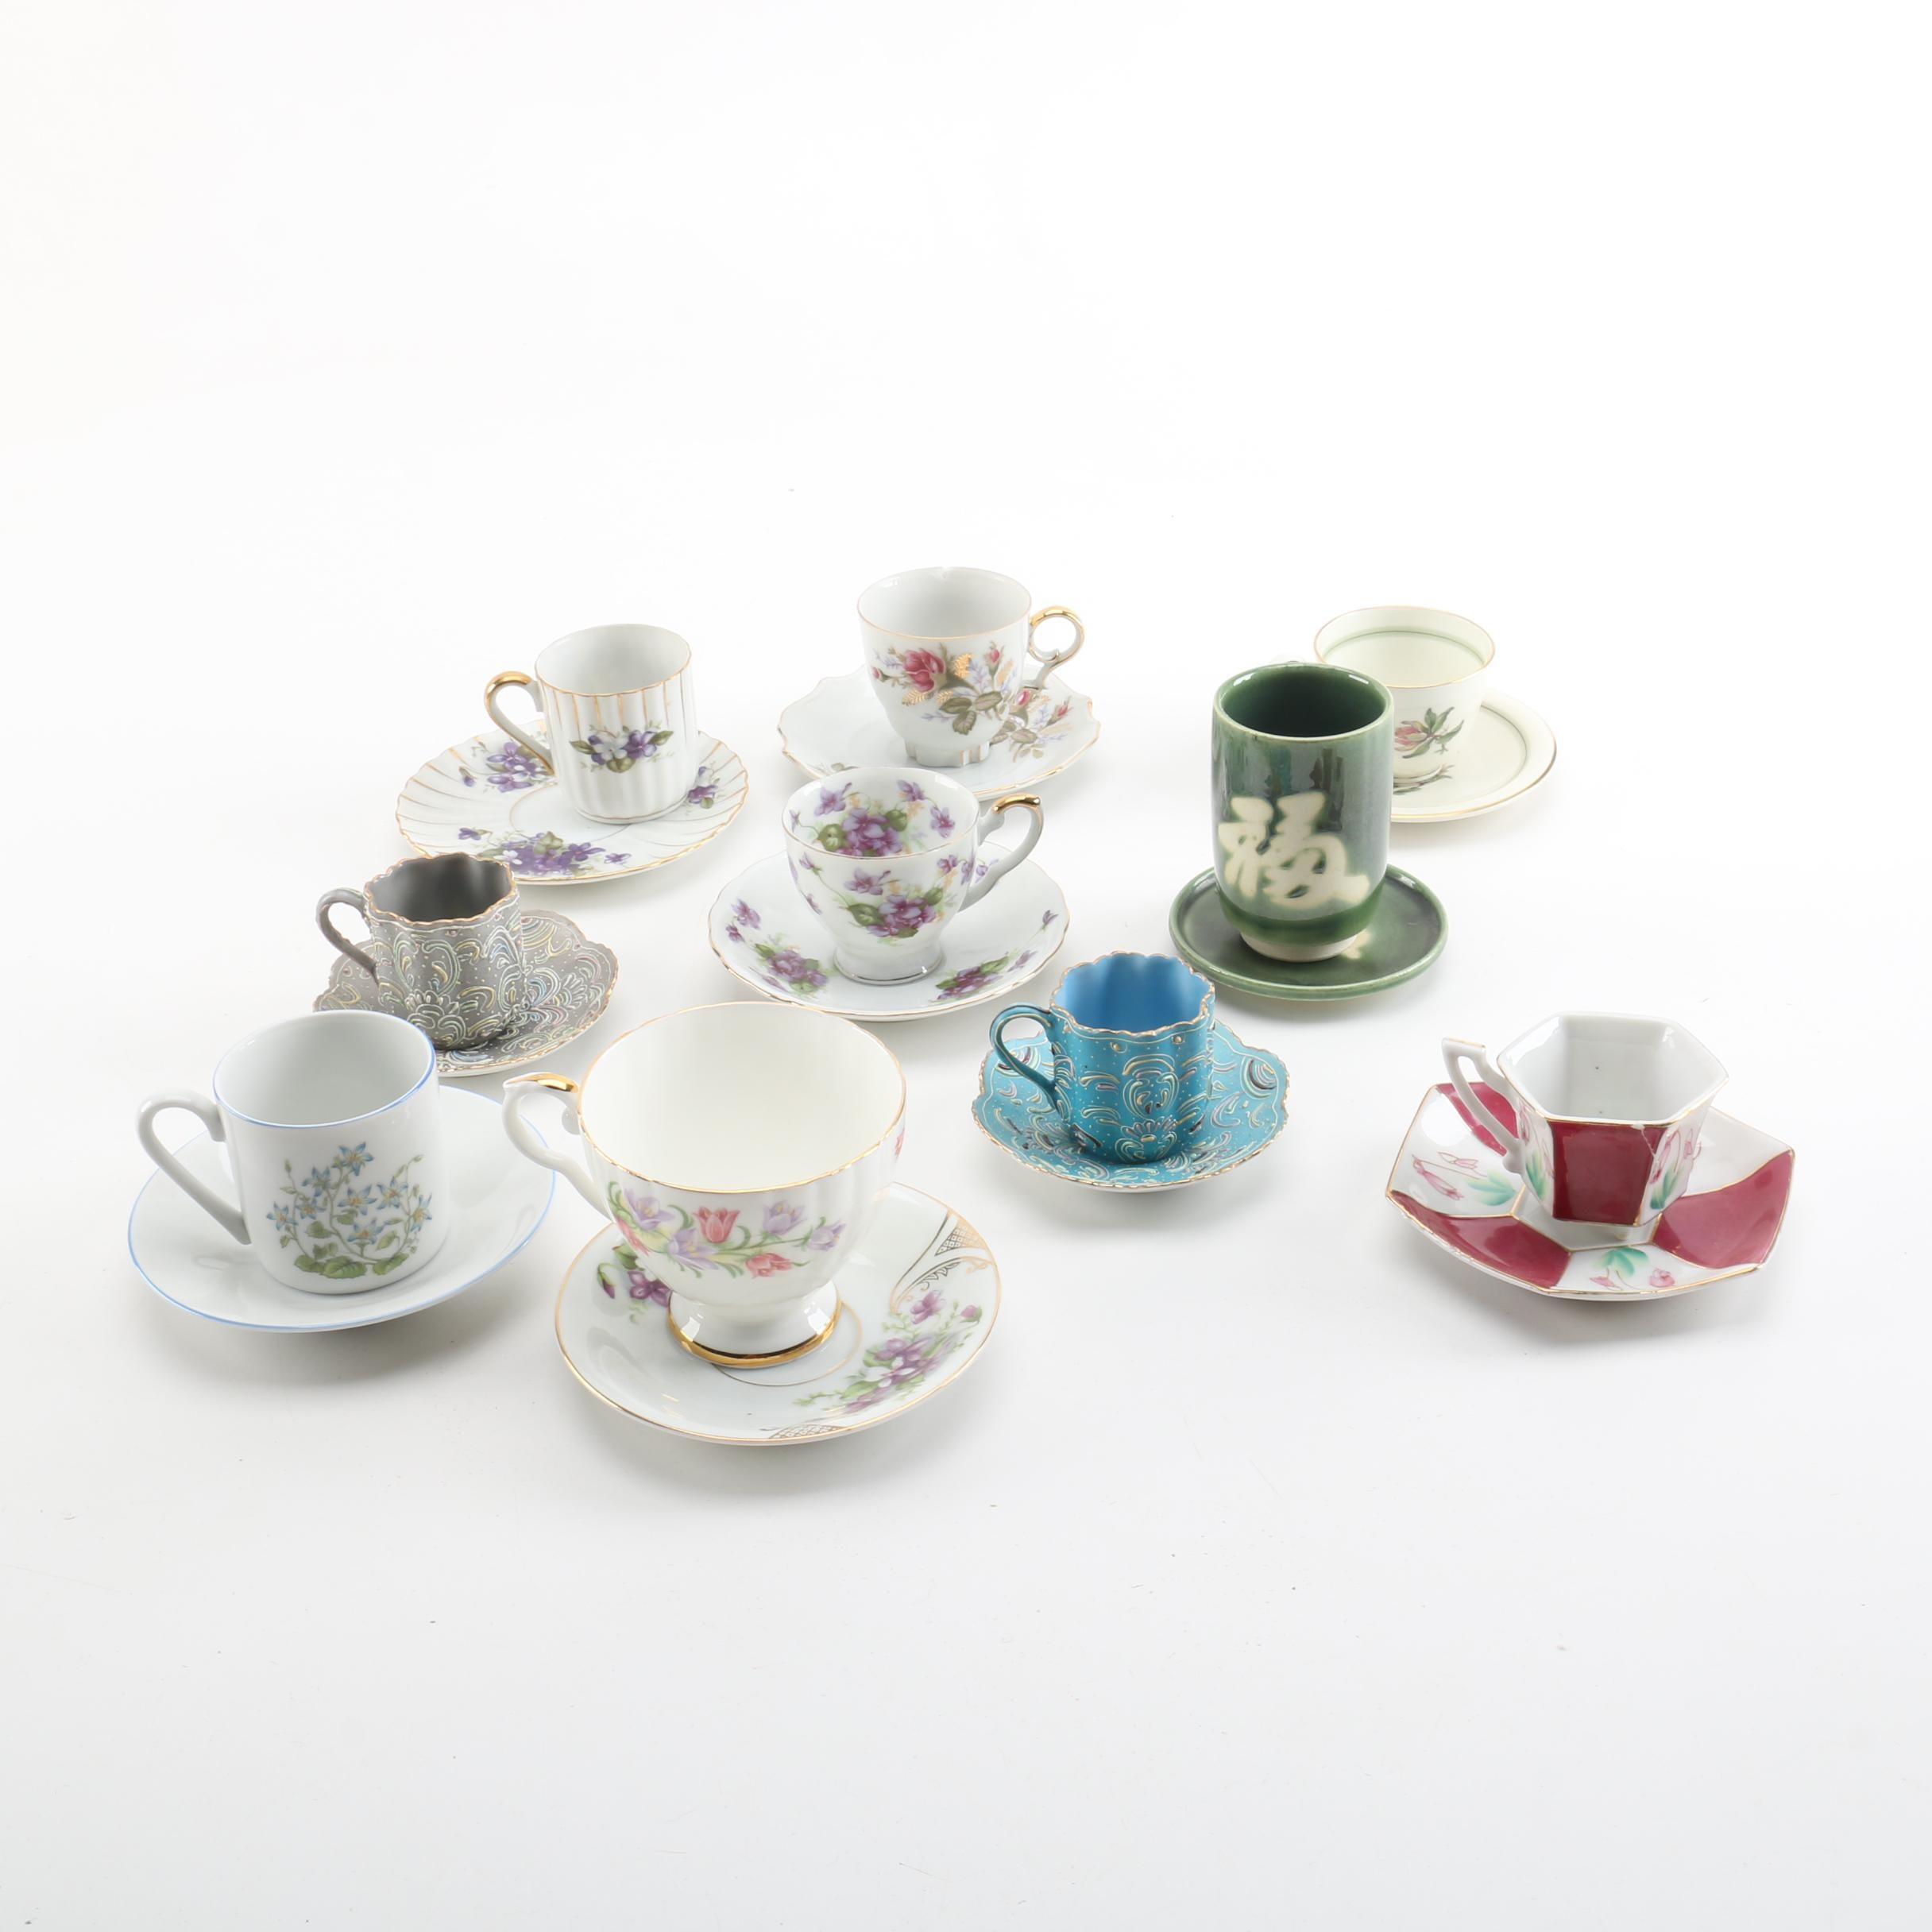 Vintage Porcelain and Ceramic Tableware Featuring Ardalt Japan